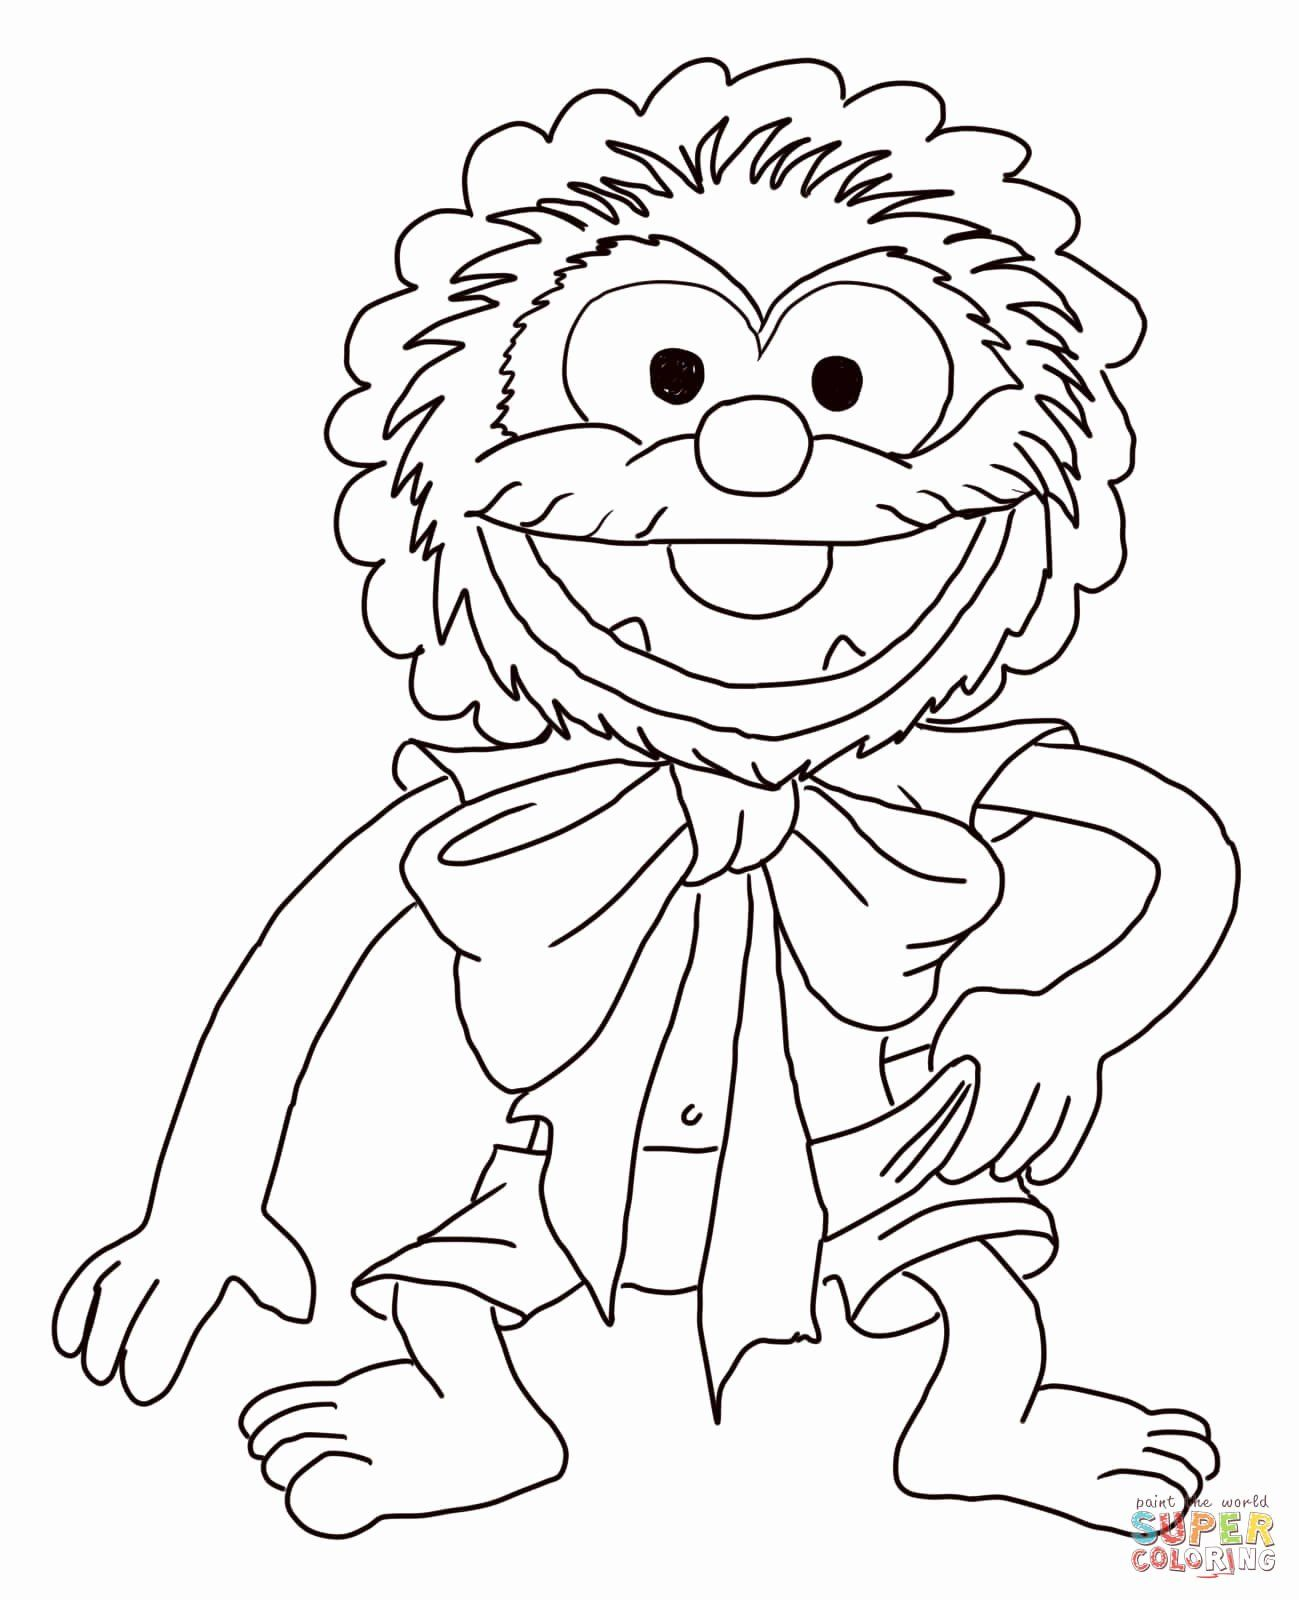 32 Muppet Babies Coloring Page Colorir Best Baby Coloring Pages Toy Story Coloring Pages Sailor Moon Coloring Pages